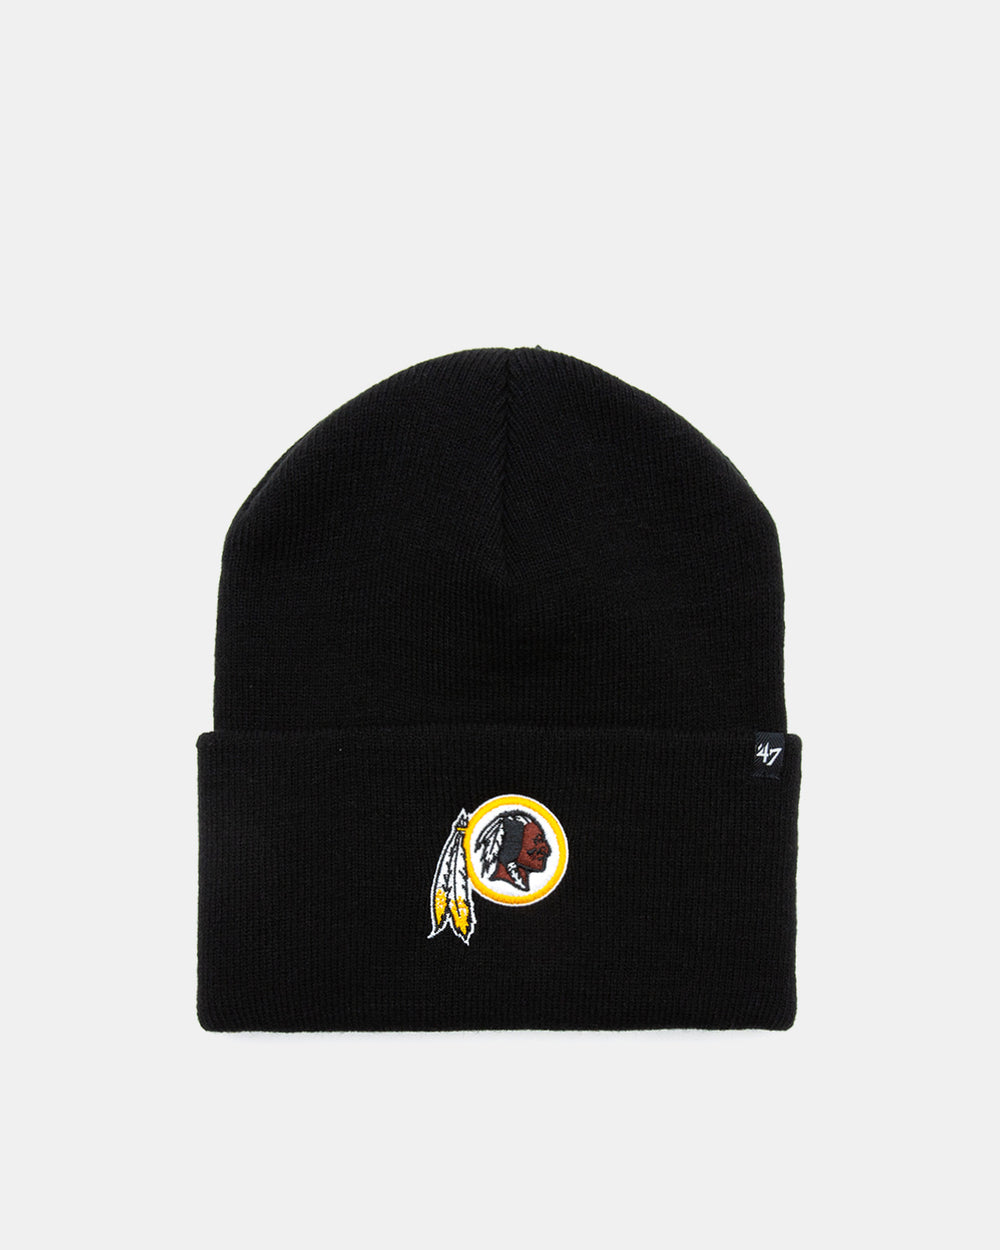 '47 Brand - '47 Brand x Carhartt Washington Redskins Cuff Knit Beanie (Black)